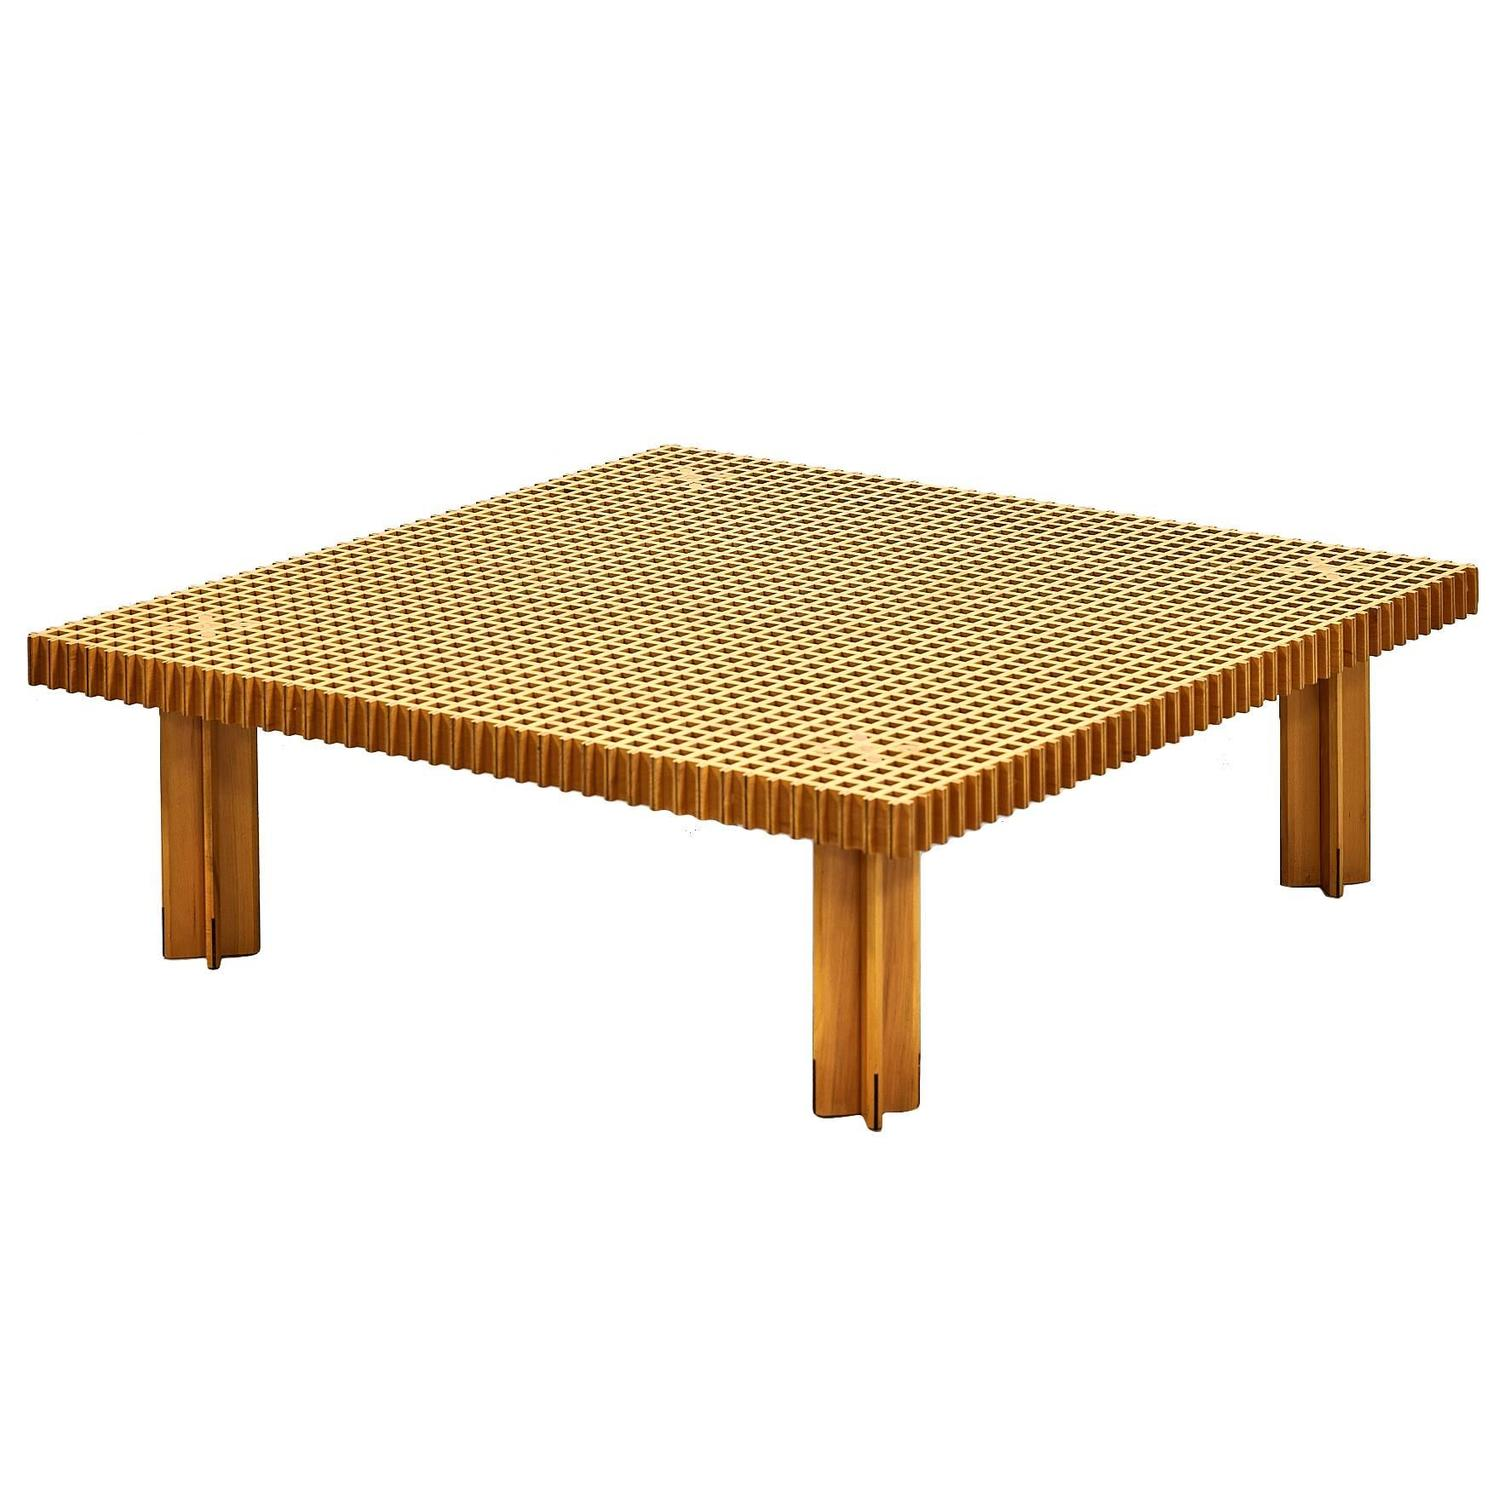 Gianfranco Frattini Kyoto Coffee Table by Knoll 1974 at 1stdibs